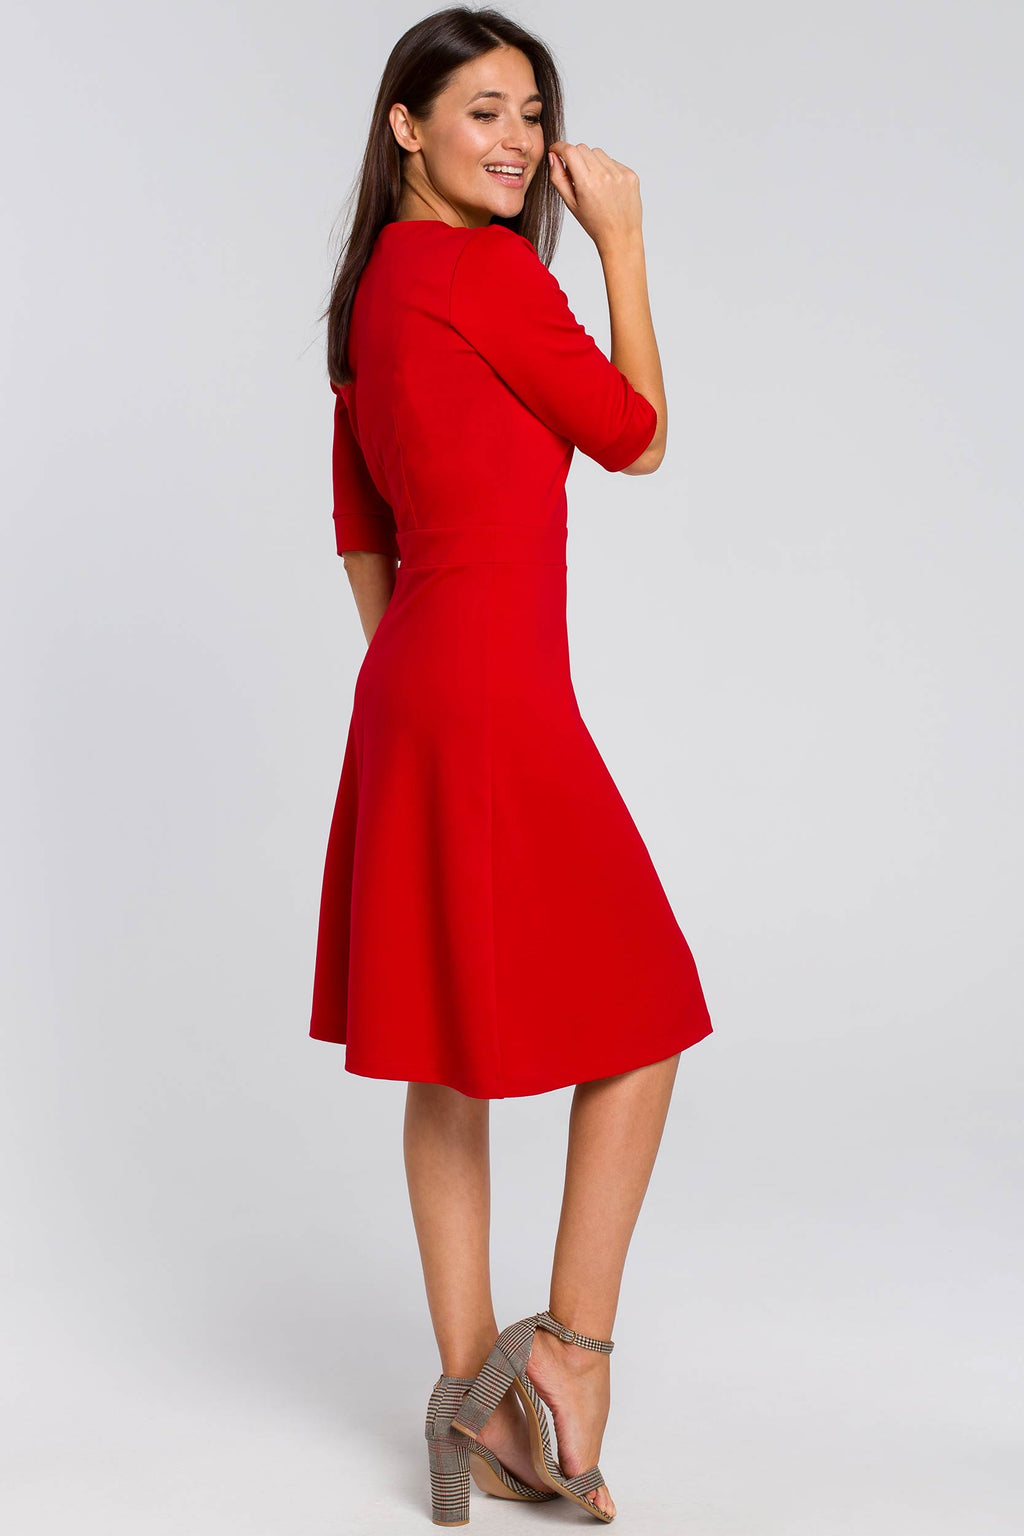 Red Cotton Shift Dress With Elbow Sleeves - So Chic Boutique